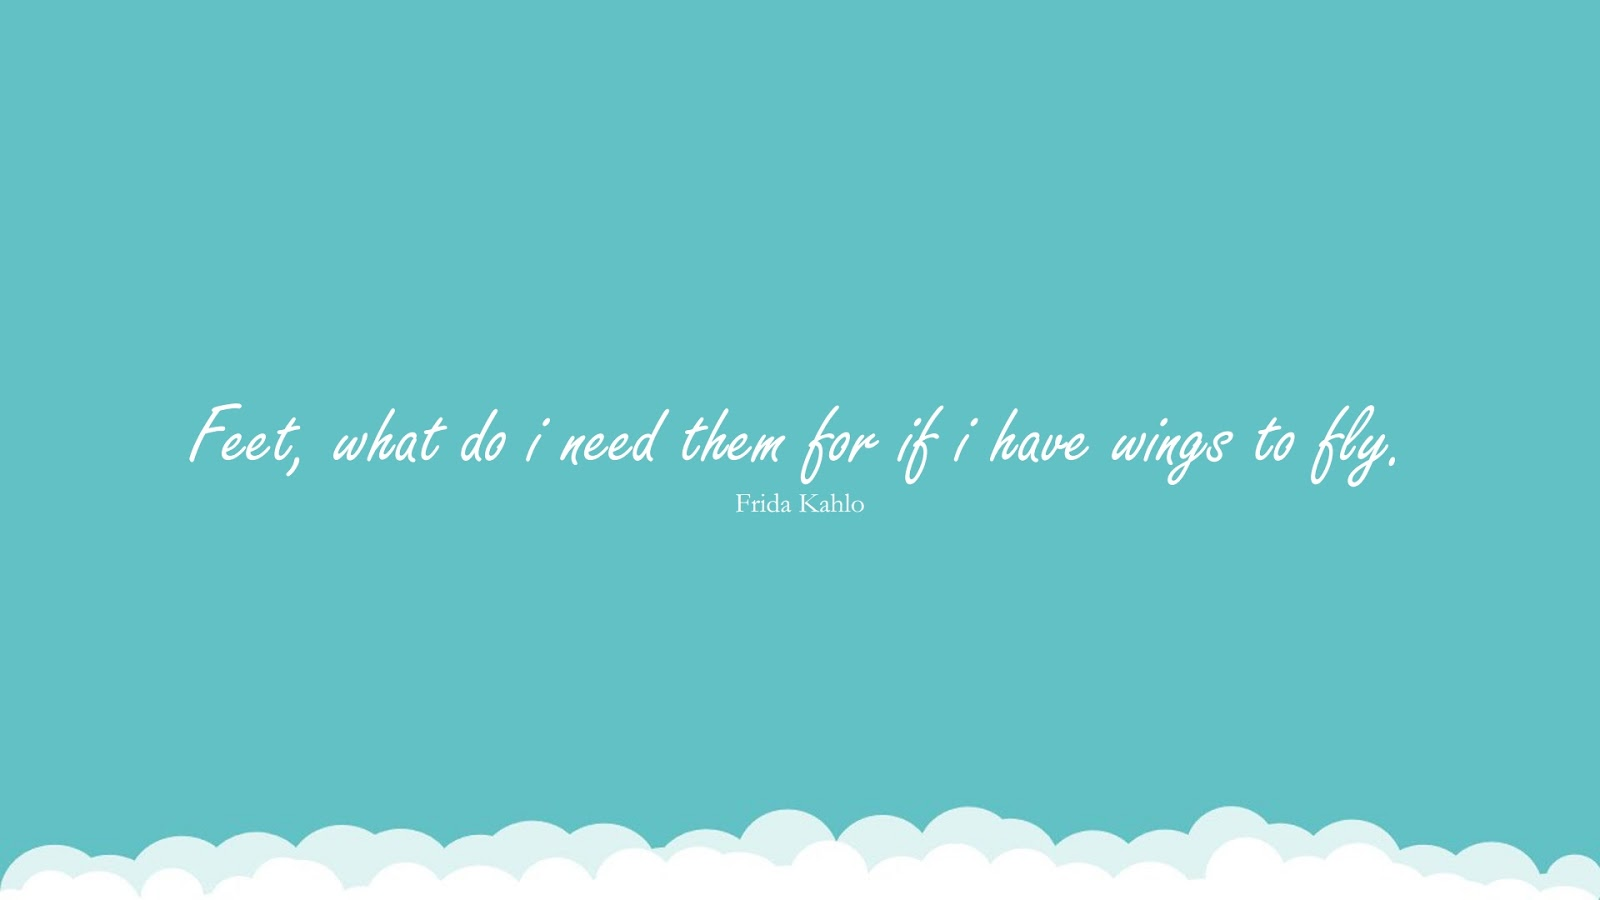 Feet, what do i need them for if i have wings to fly. (Frida Kahlo);  #InspirationalQuotes